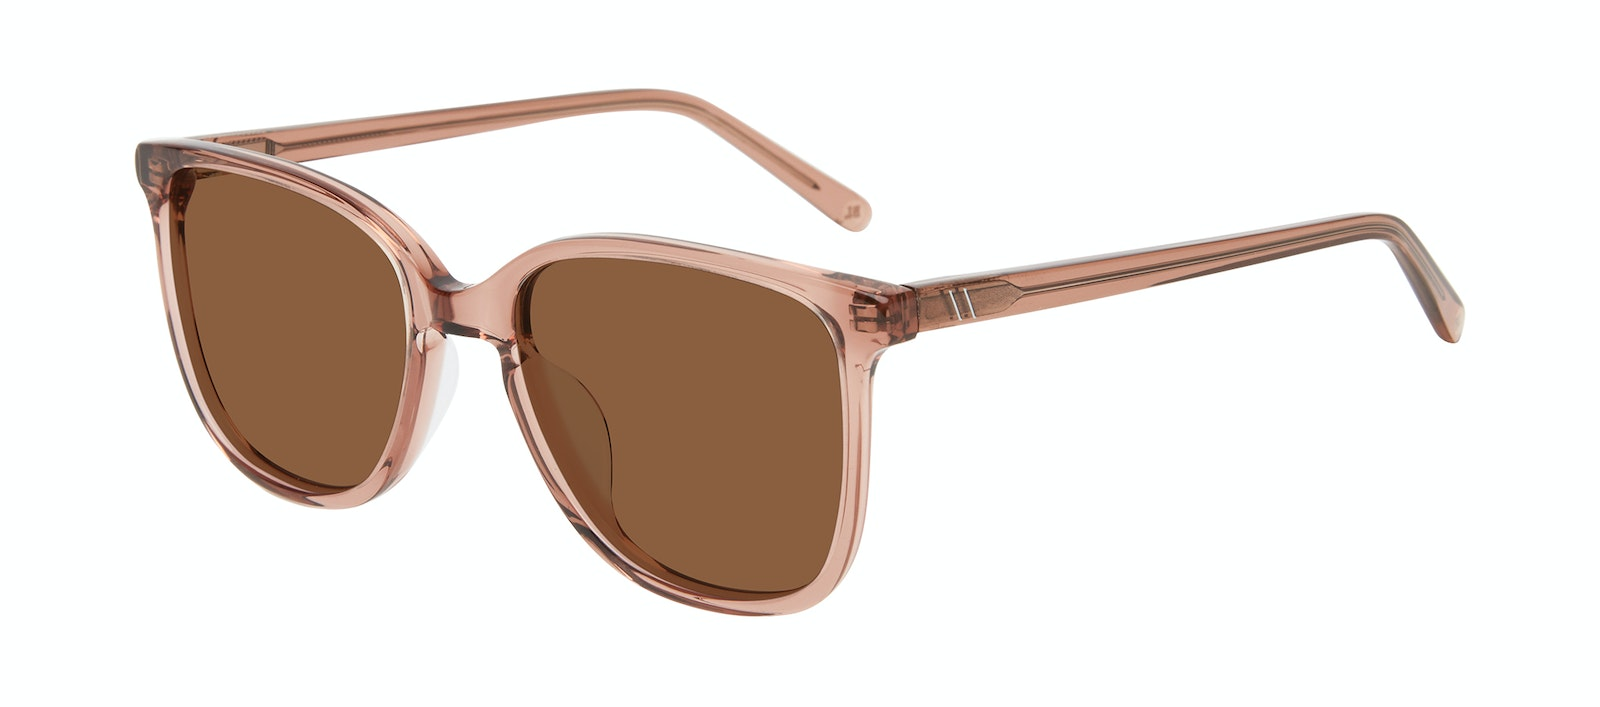 Affordable Fashion Glasses Square Sunglasses Women Lead Rose Tilt